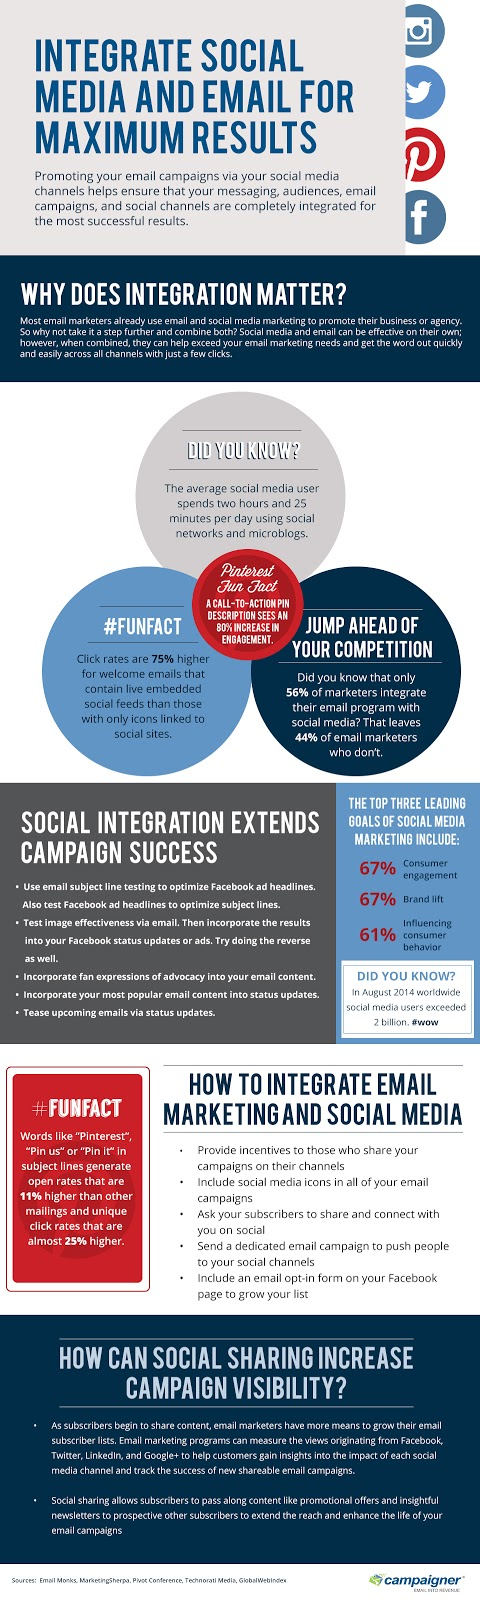 How to Integrate Social Media and Email for Maximum Results